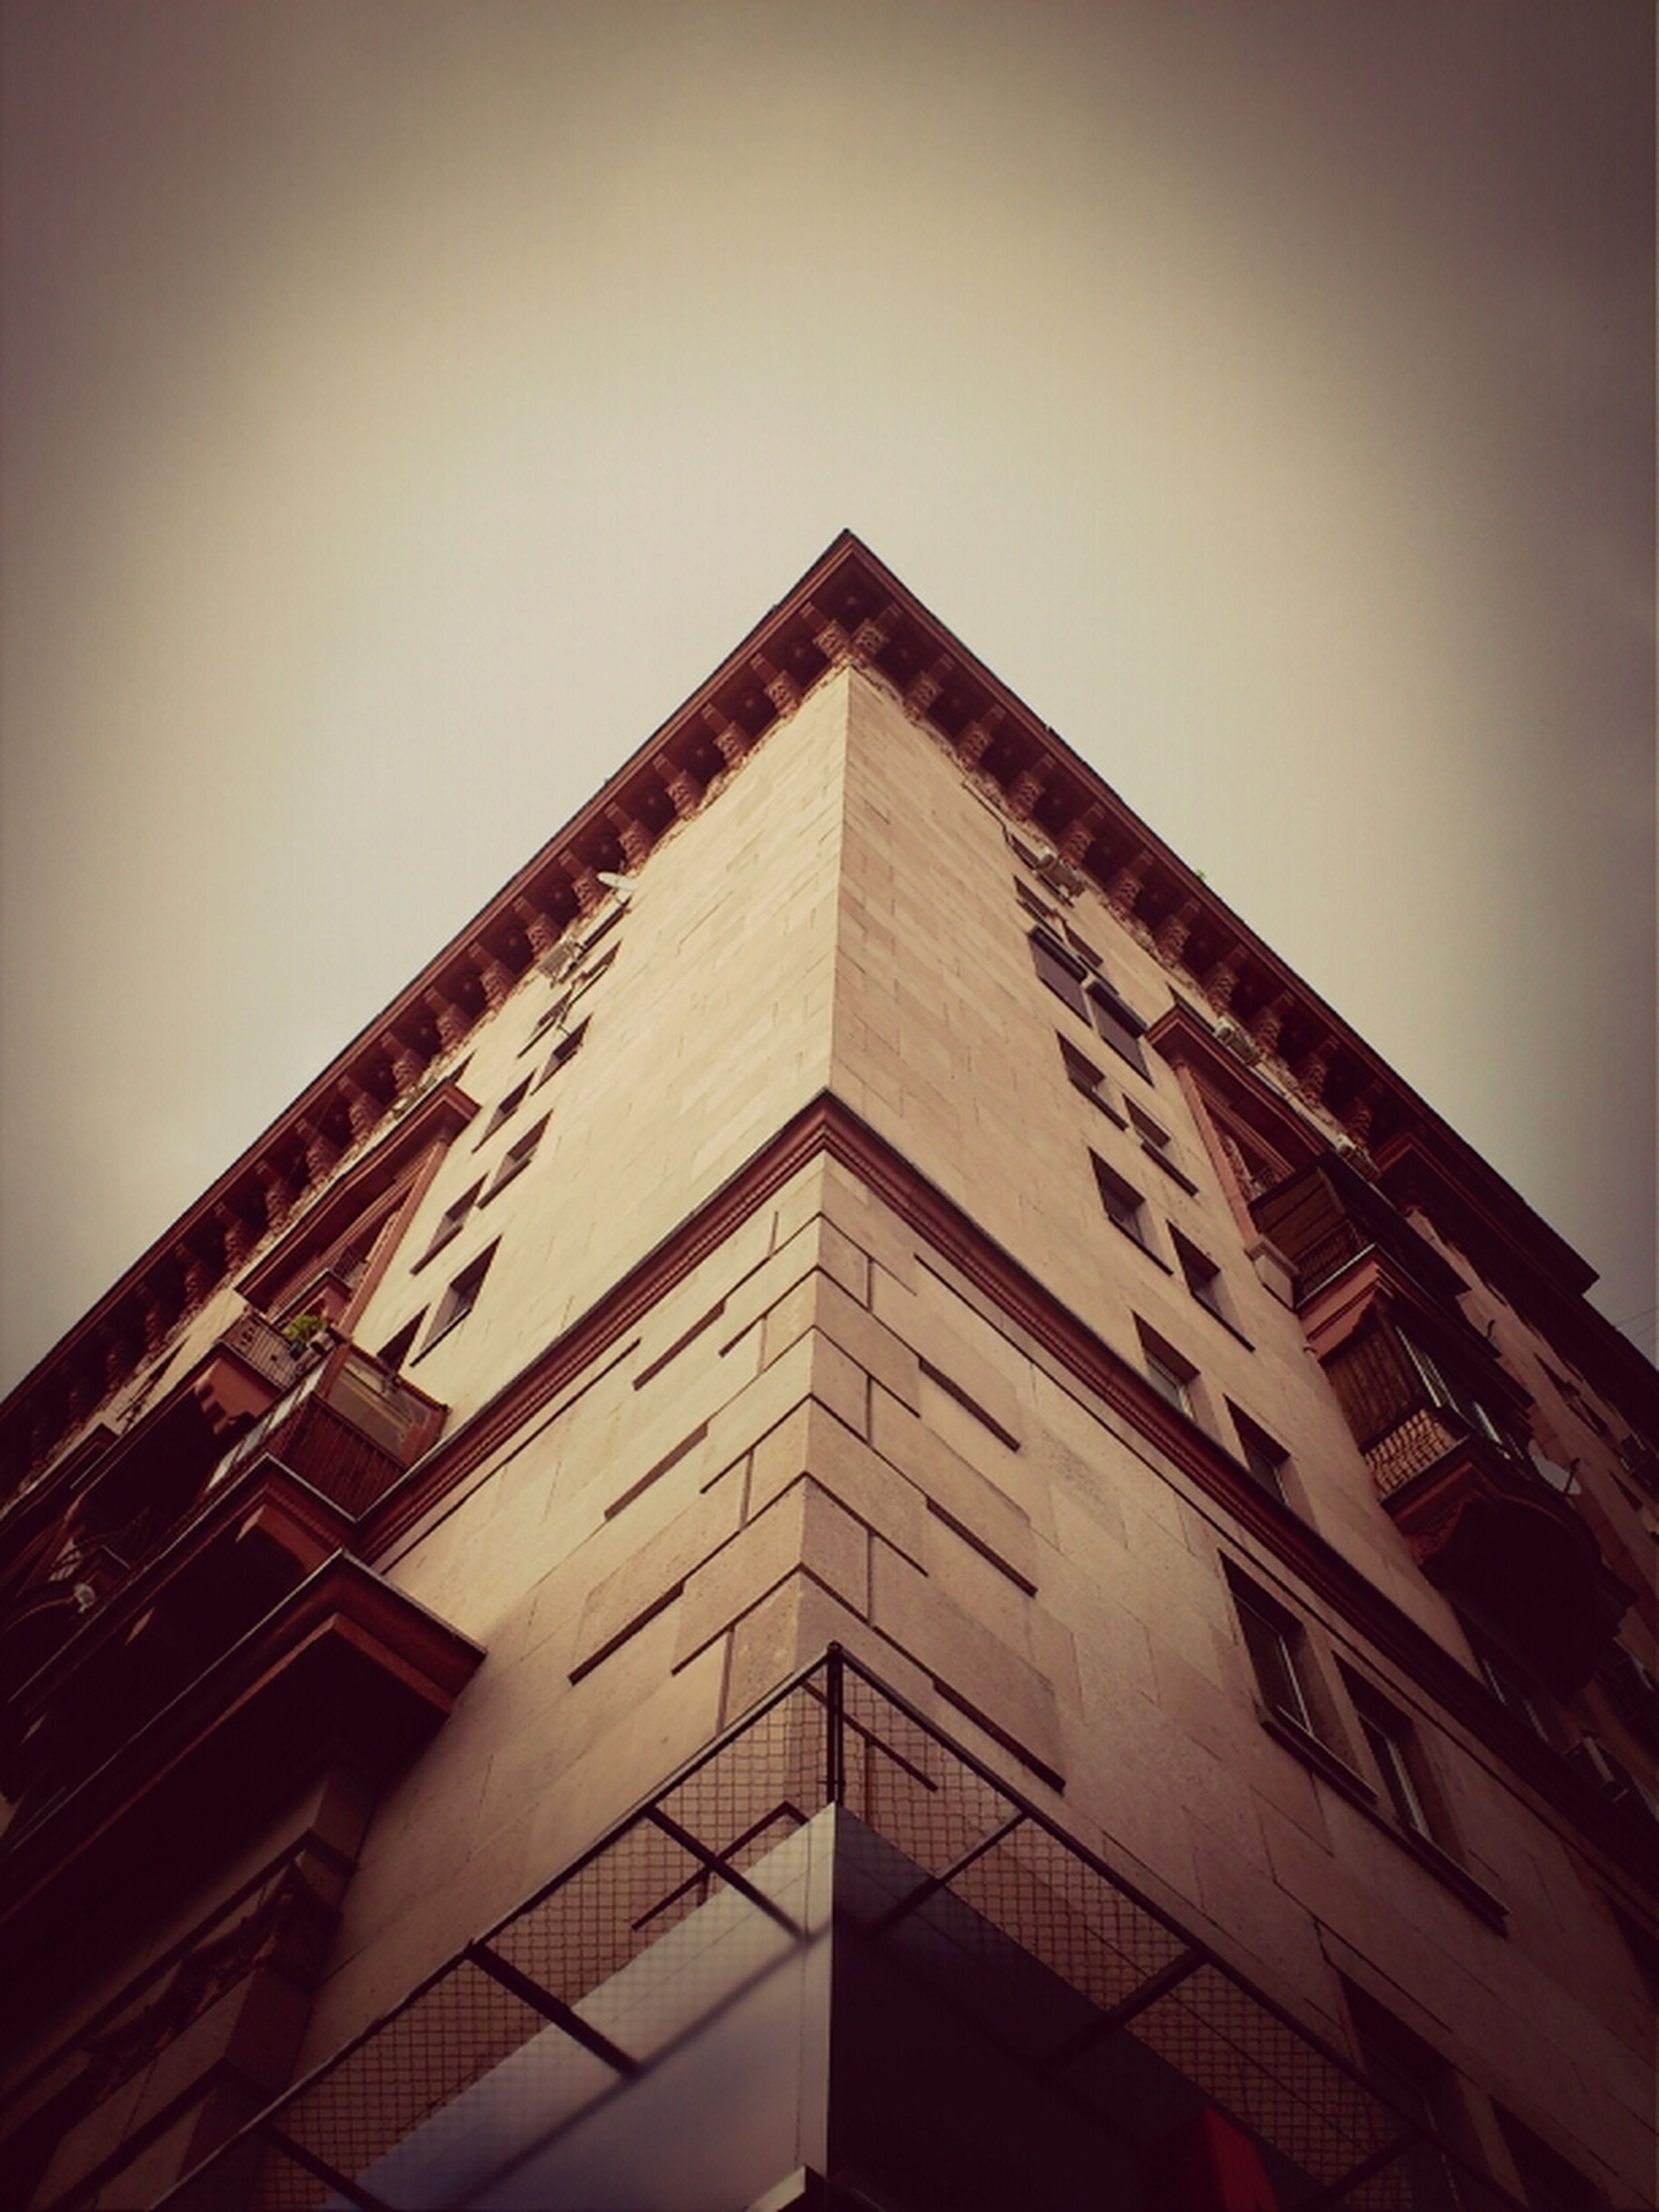 architecture, built structure, low angle view, building exterior, clear sky, building, sky, high section, window, residential structure, outdoors, city, no people, residential building, day, tower, copy space, tall - high, house, auto post production filter